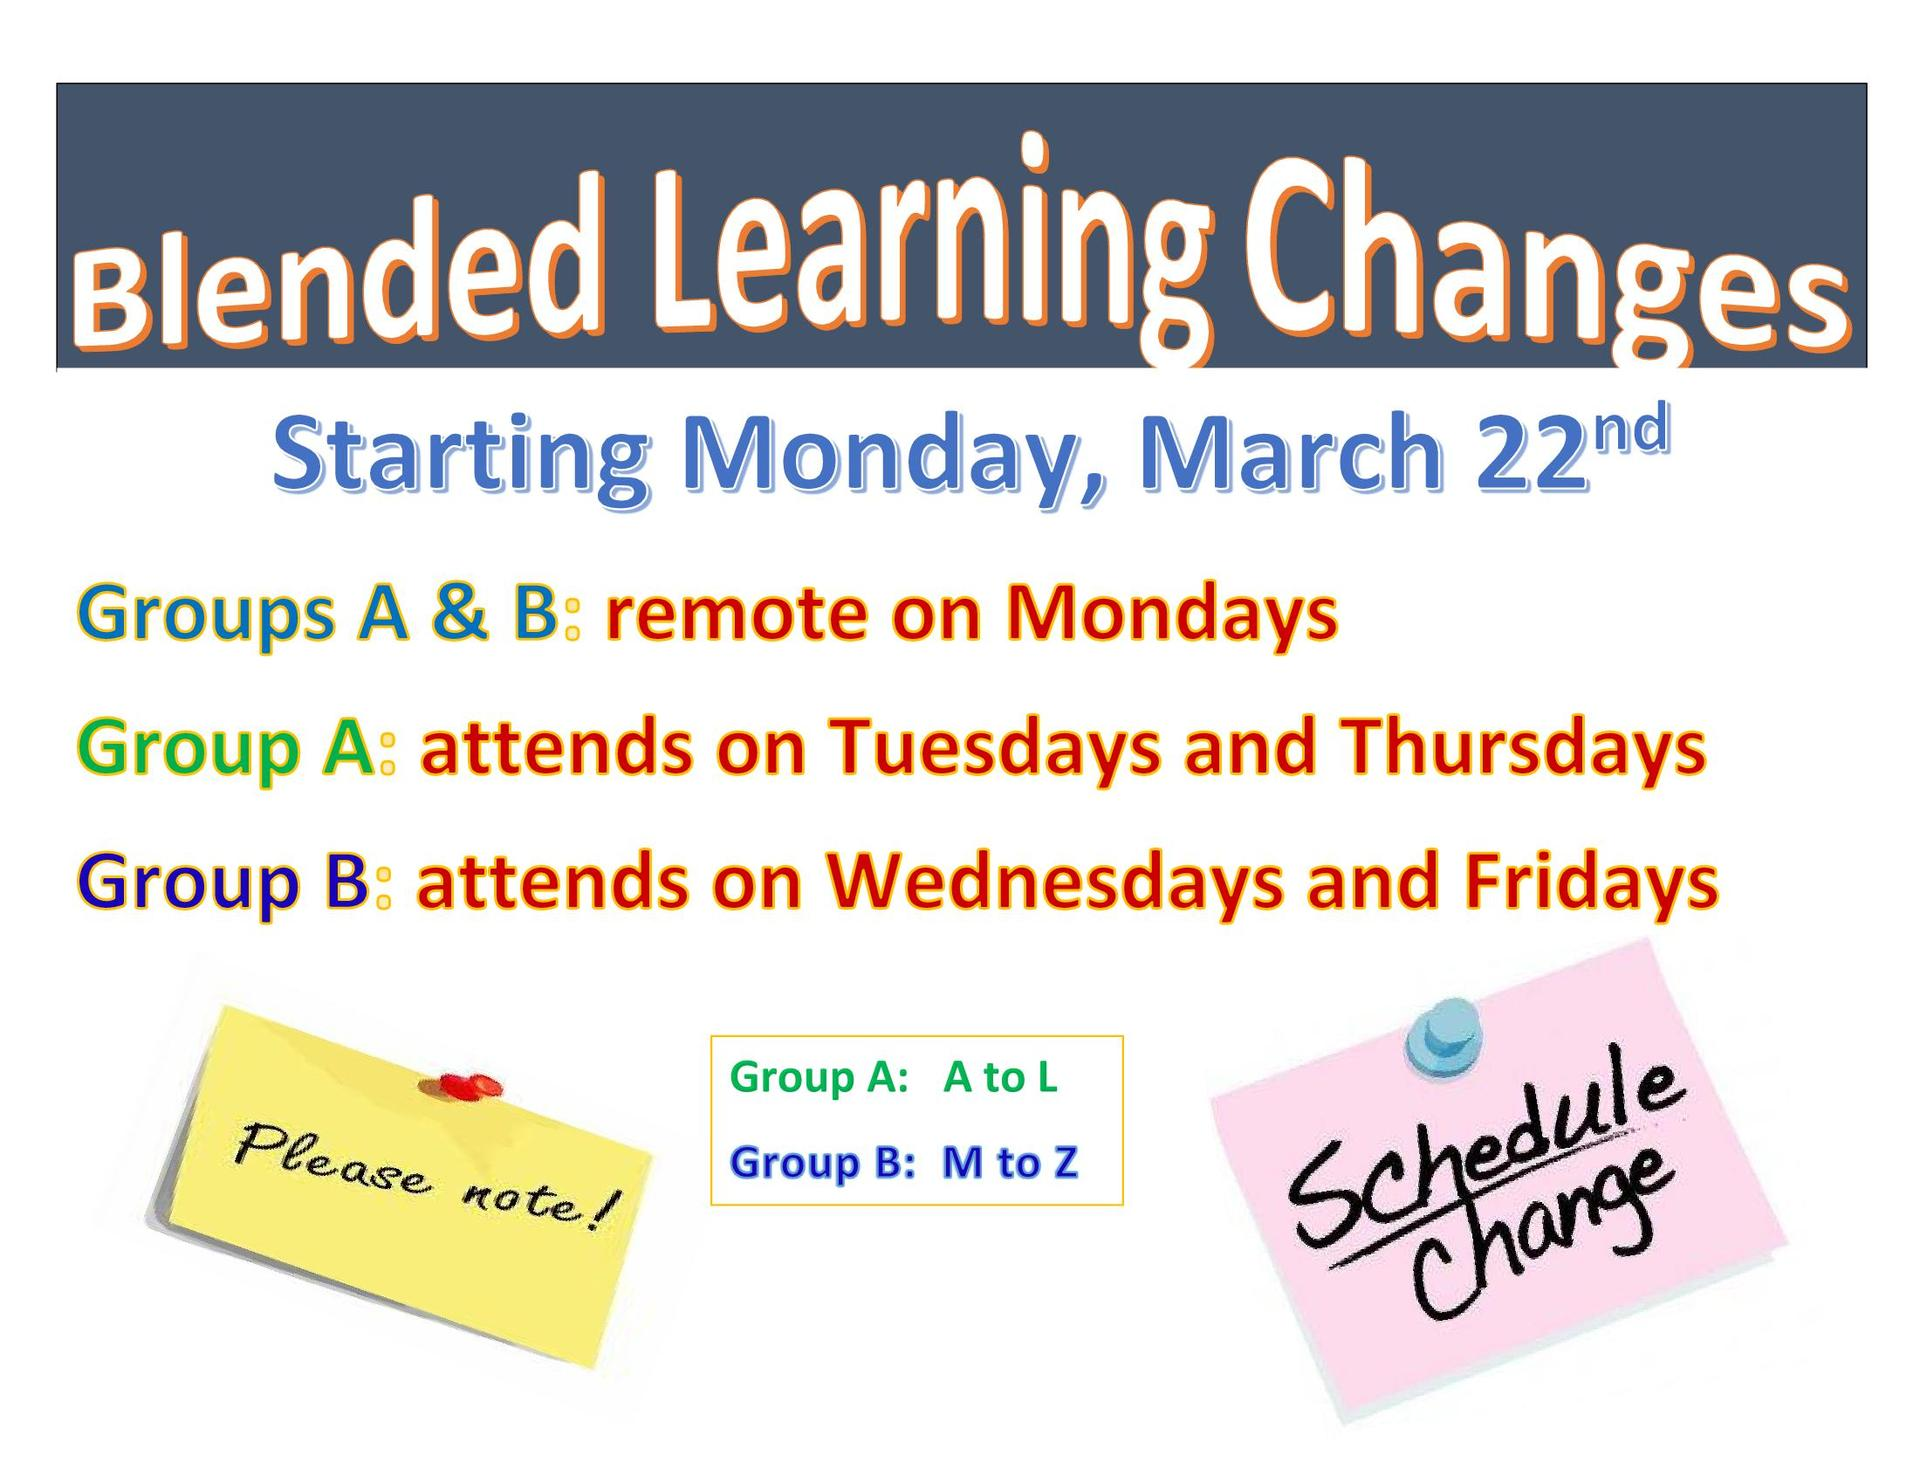 Blended learning information flyer. Group A&B remote on Mon. Group A attend building on Tue and Thurs. Group B attend building on Wed and Fri.